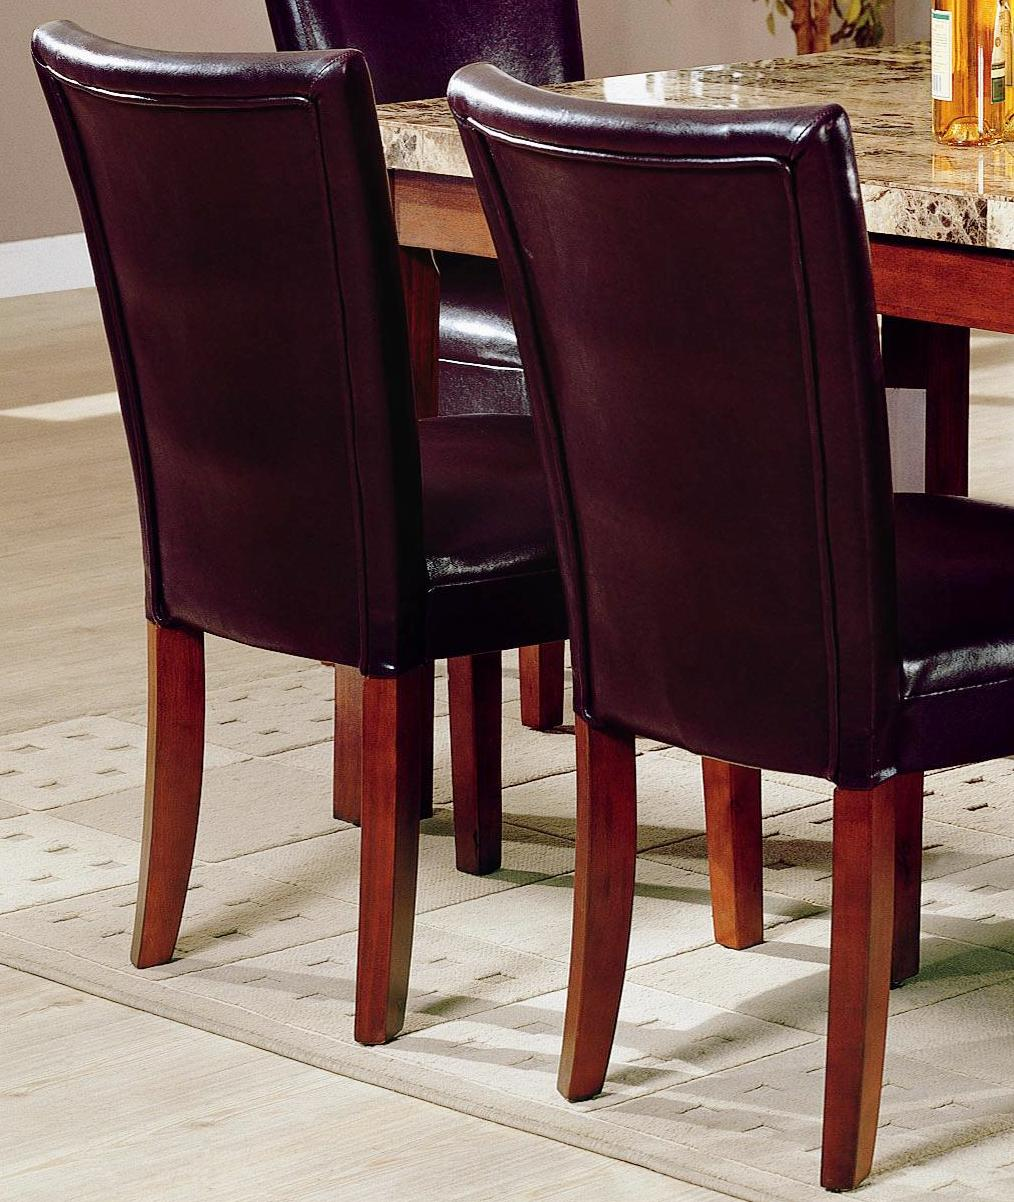 A Glass And Gold Bar Cart Brown Leather Armchair And: Dark Brown Bicast Leather Parson Chairs (Set Of 2)